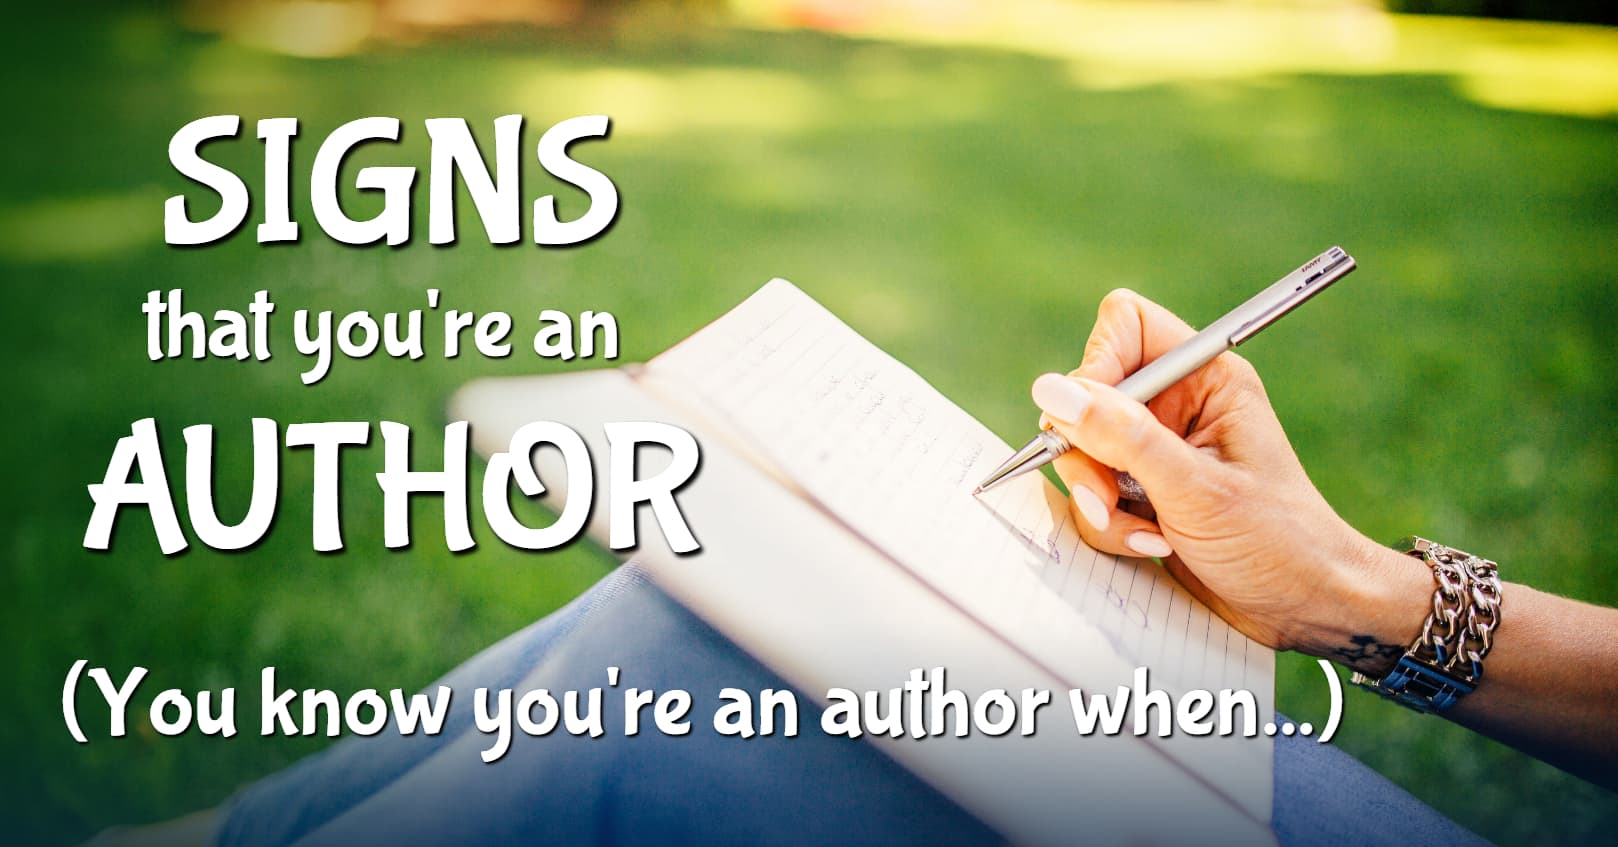 Signs that you're an author, you know you're an author if